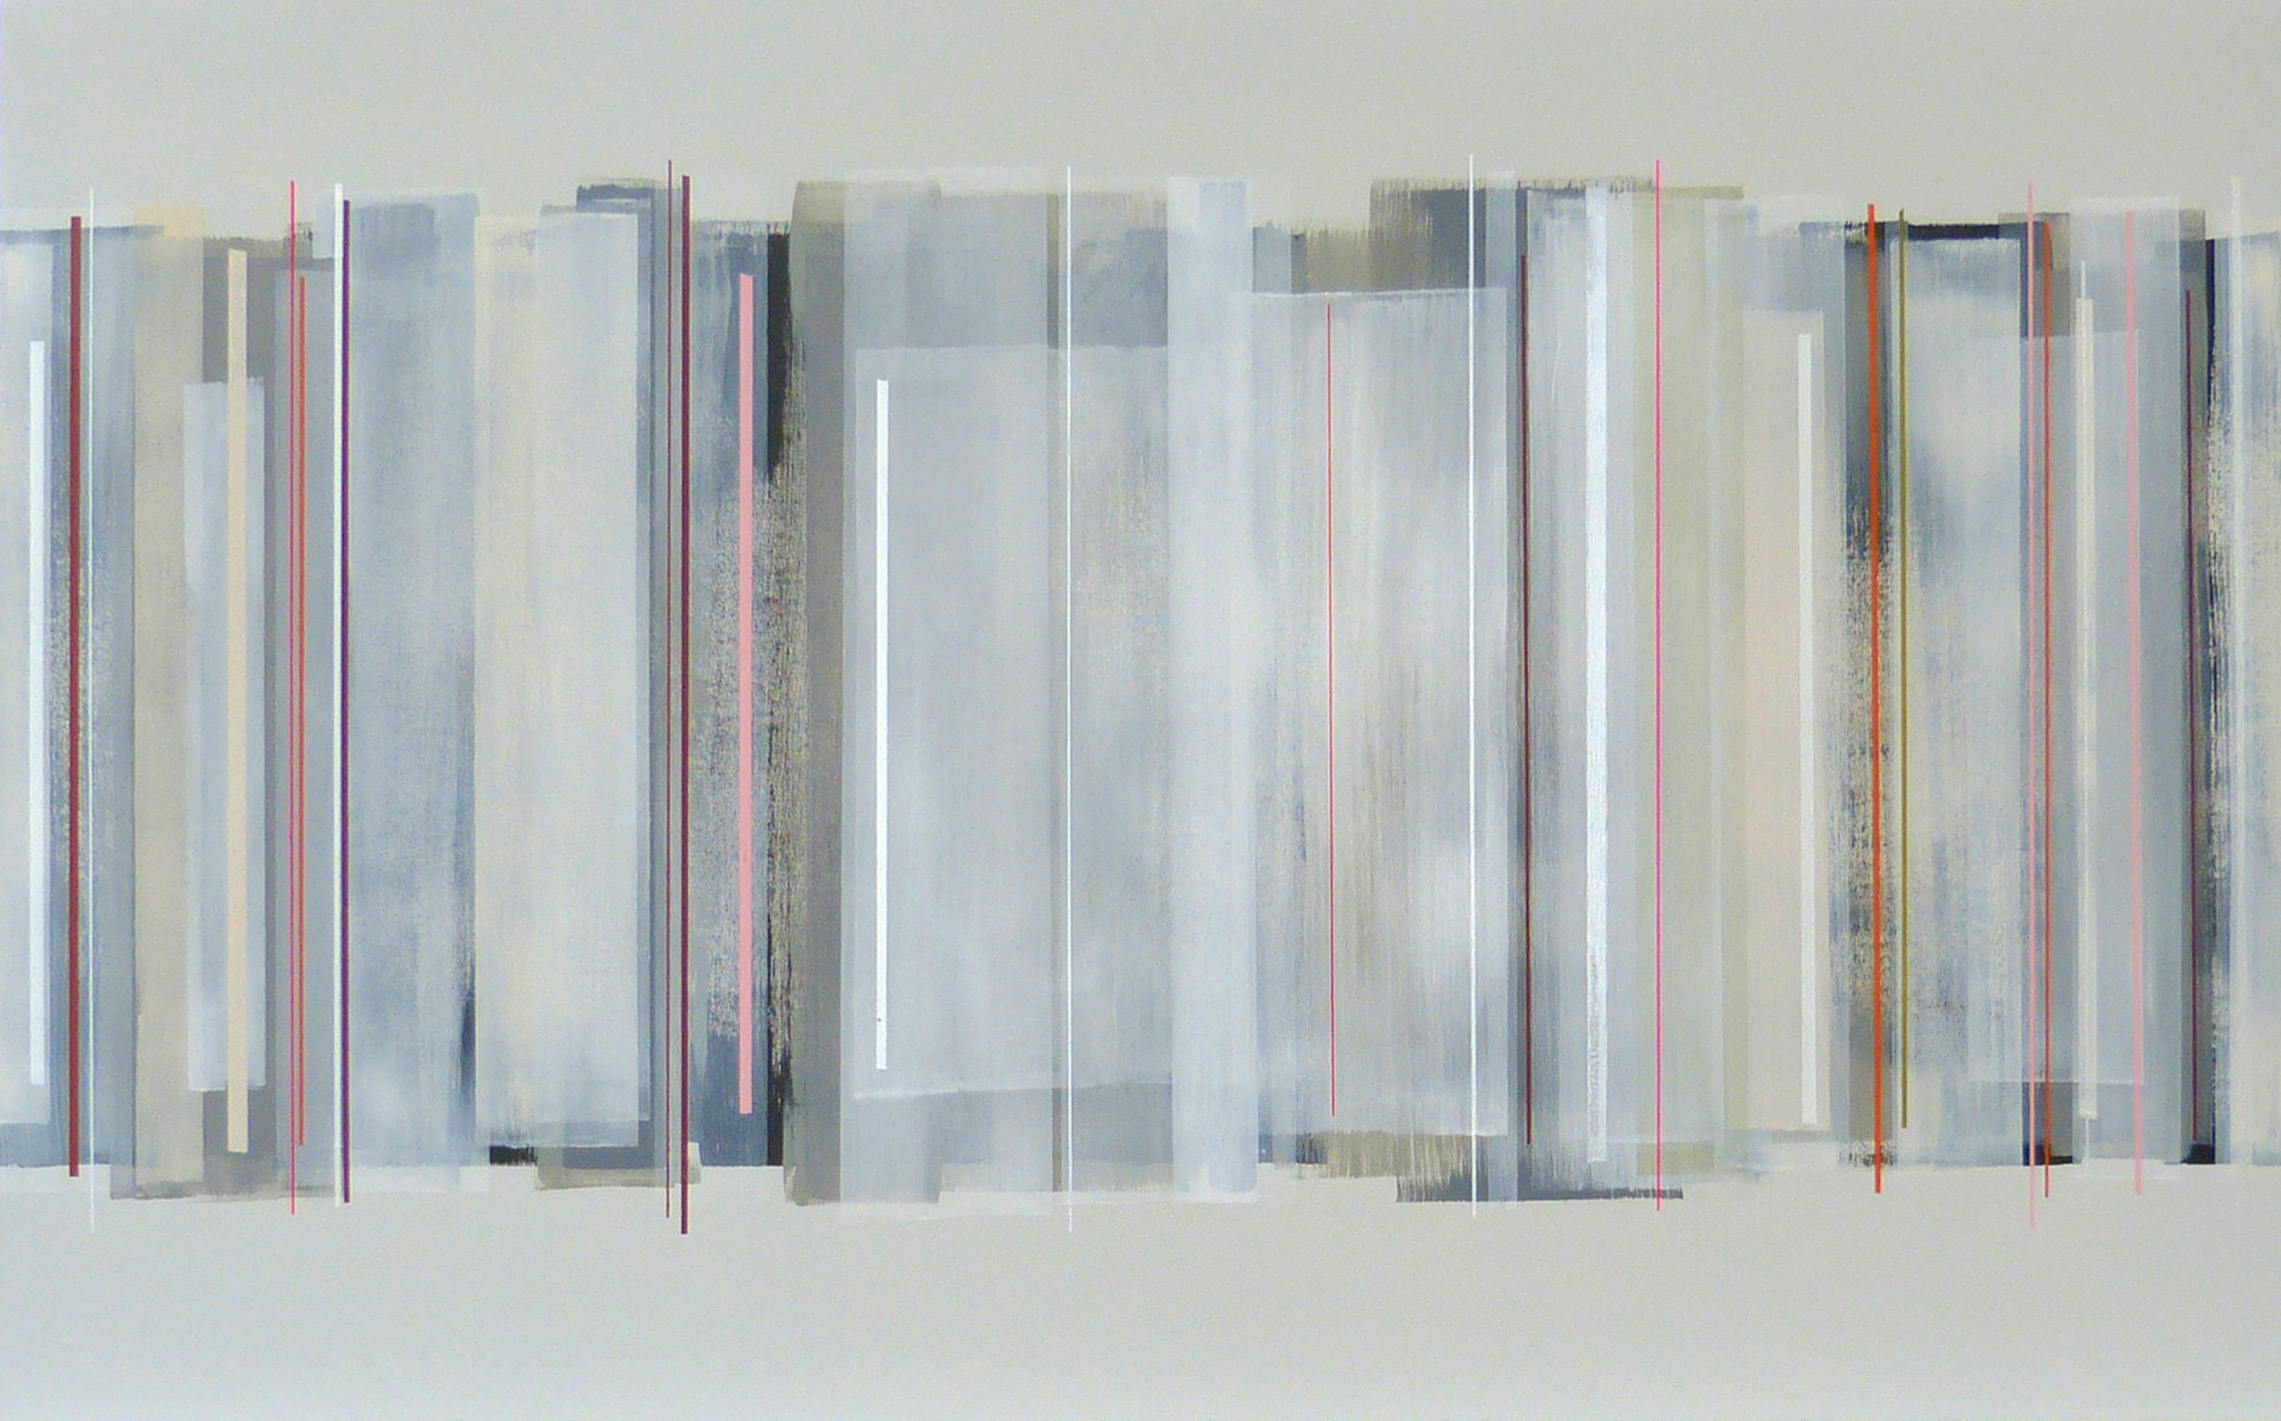 HECTOR 122x76cm | mixed media on canvas with high gloss epoxy resin |  £1,900.00 | SOLD